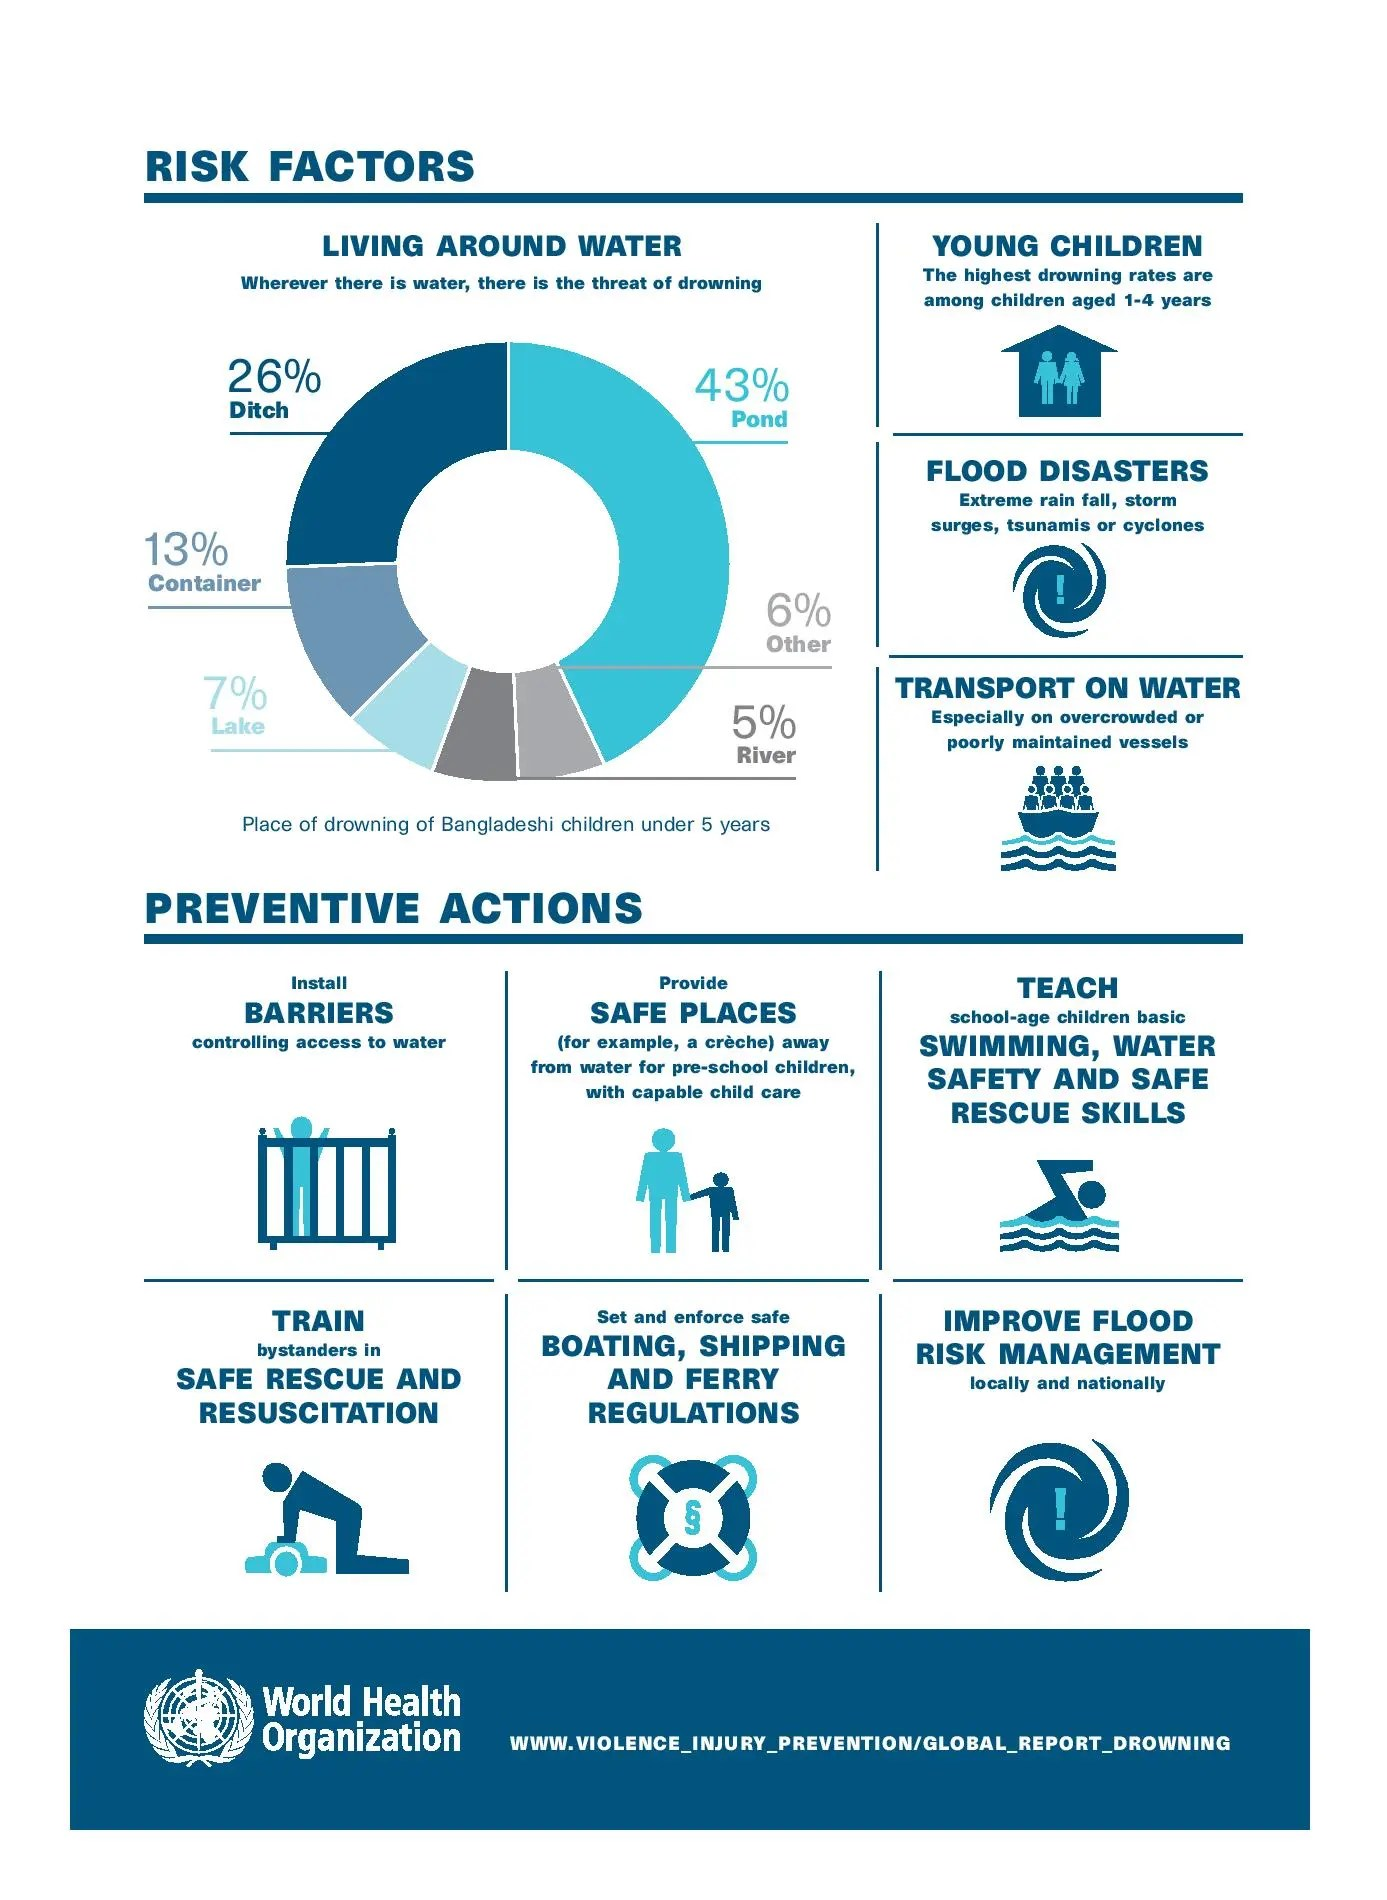 Global Report On Drowning Infographic - Water Safety Magazine